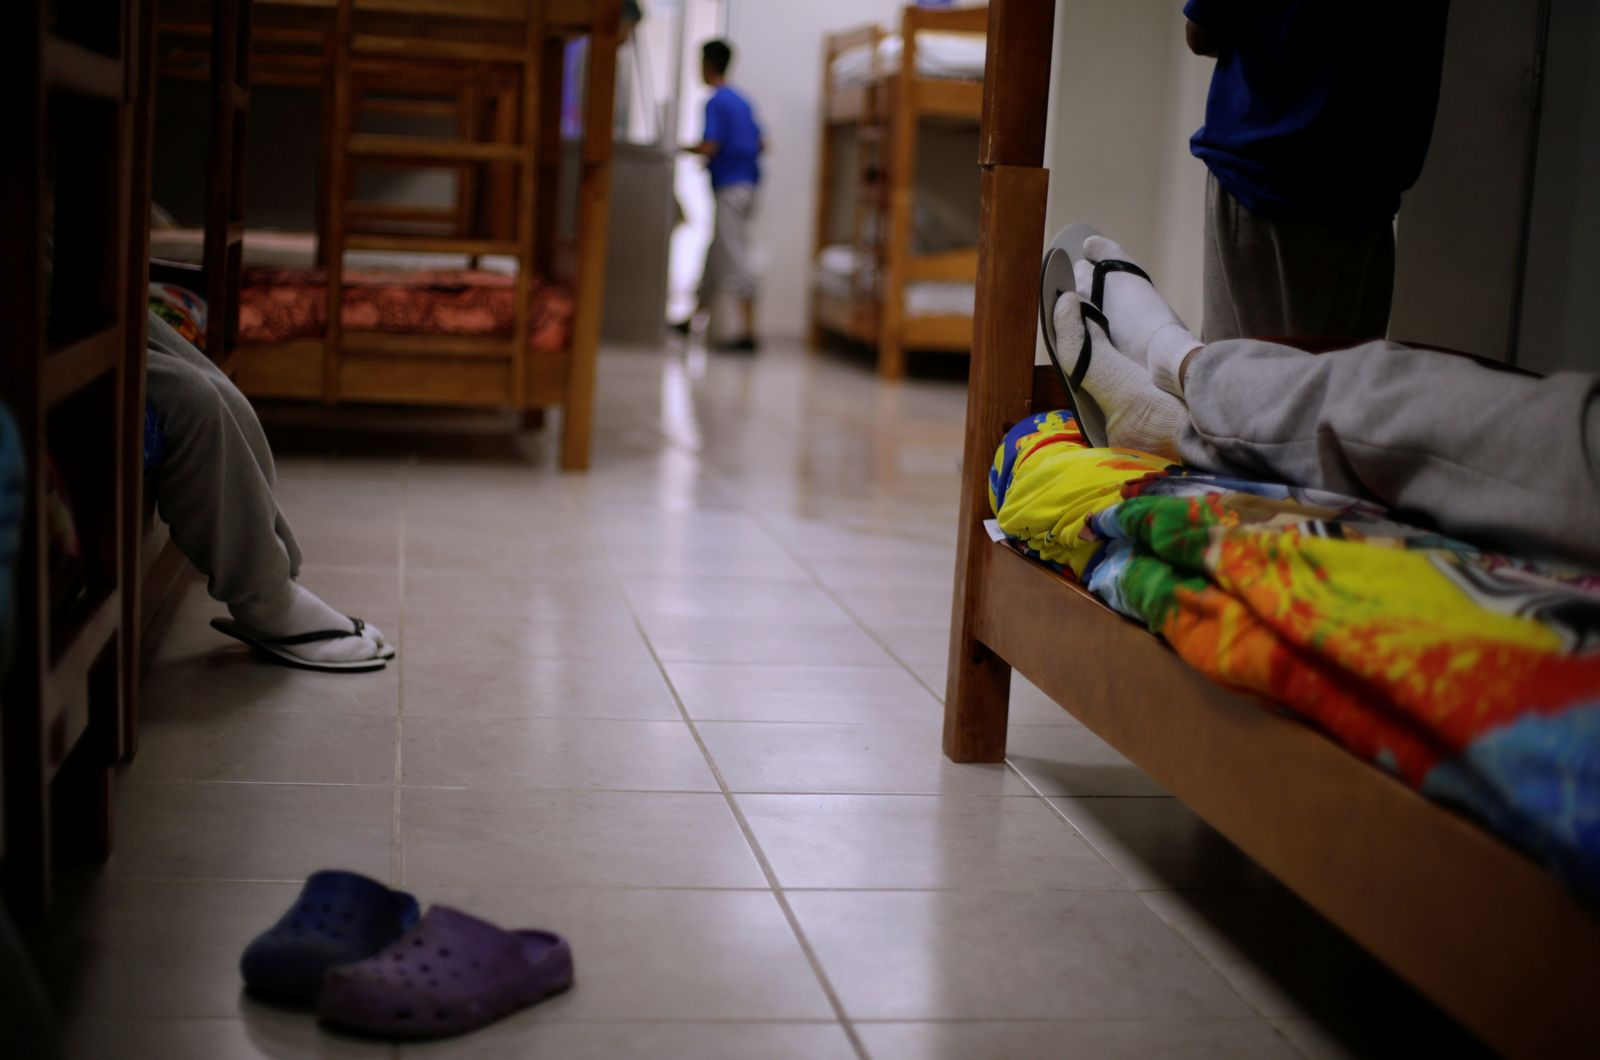 Migrant children from Central America and Mexico rest in a dormitory at the Noemi Alvarez Quillay immigrant shelter for unaccompanied minors, run by the Mexican government, in Ciudad Juarez